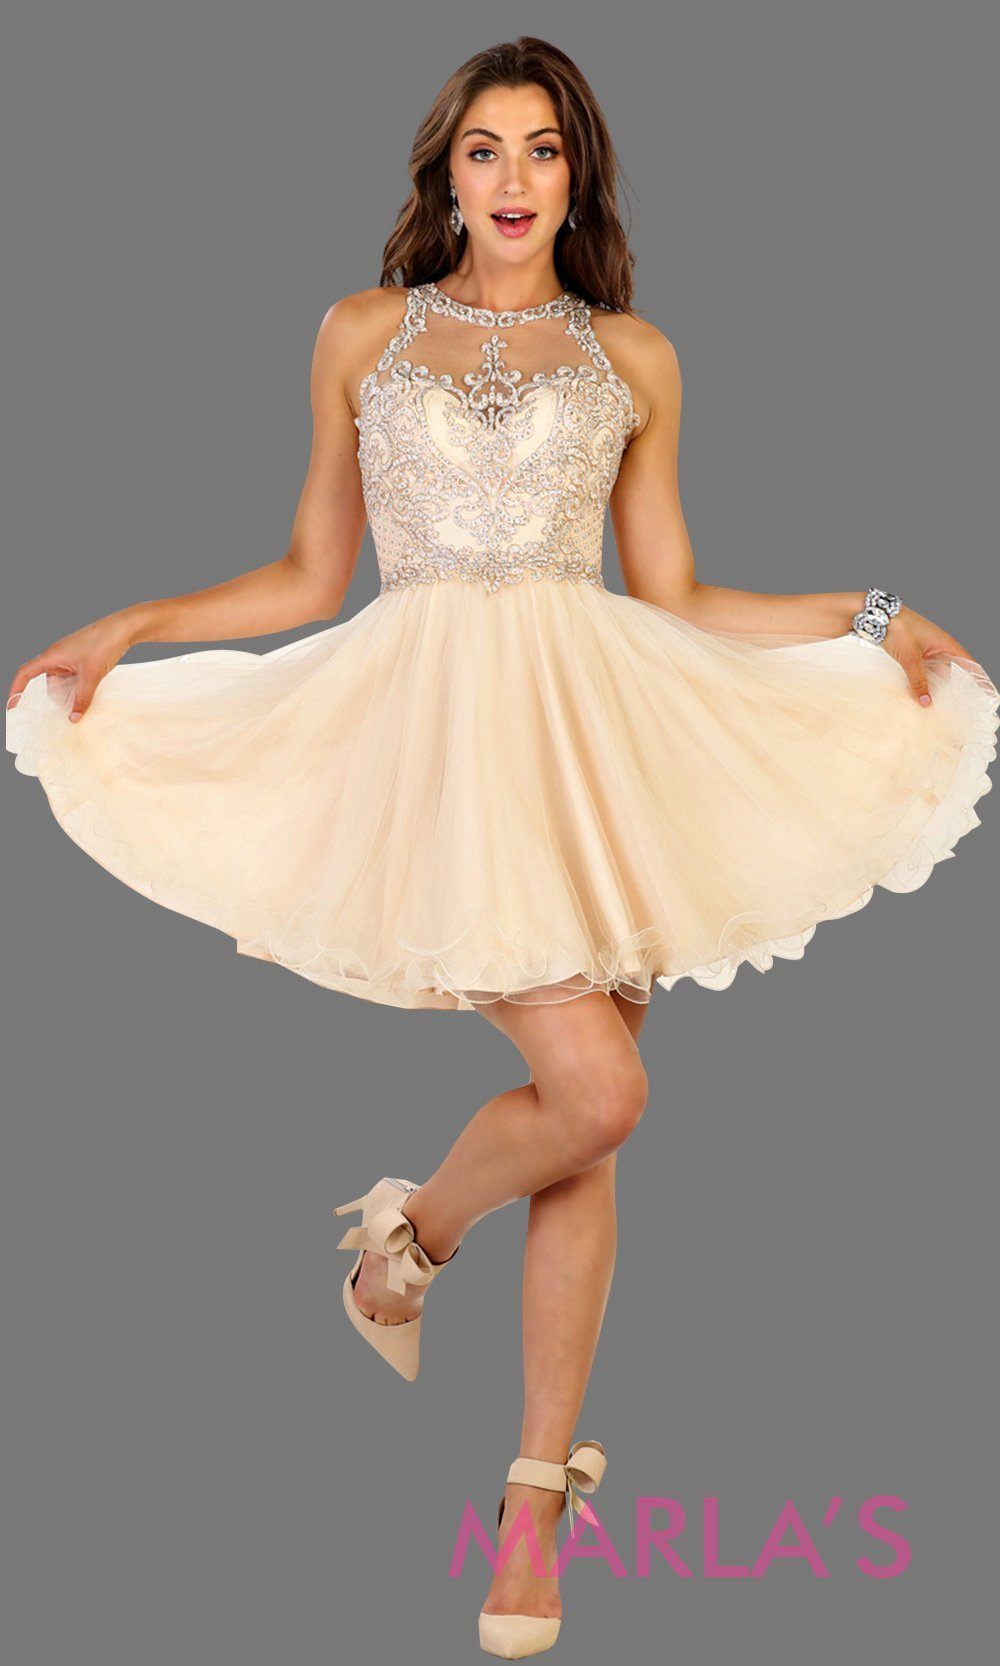 f6b81ca7d4 Short high neck puffy champagne dress with lace top. Perfect for grade 8  grad